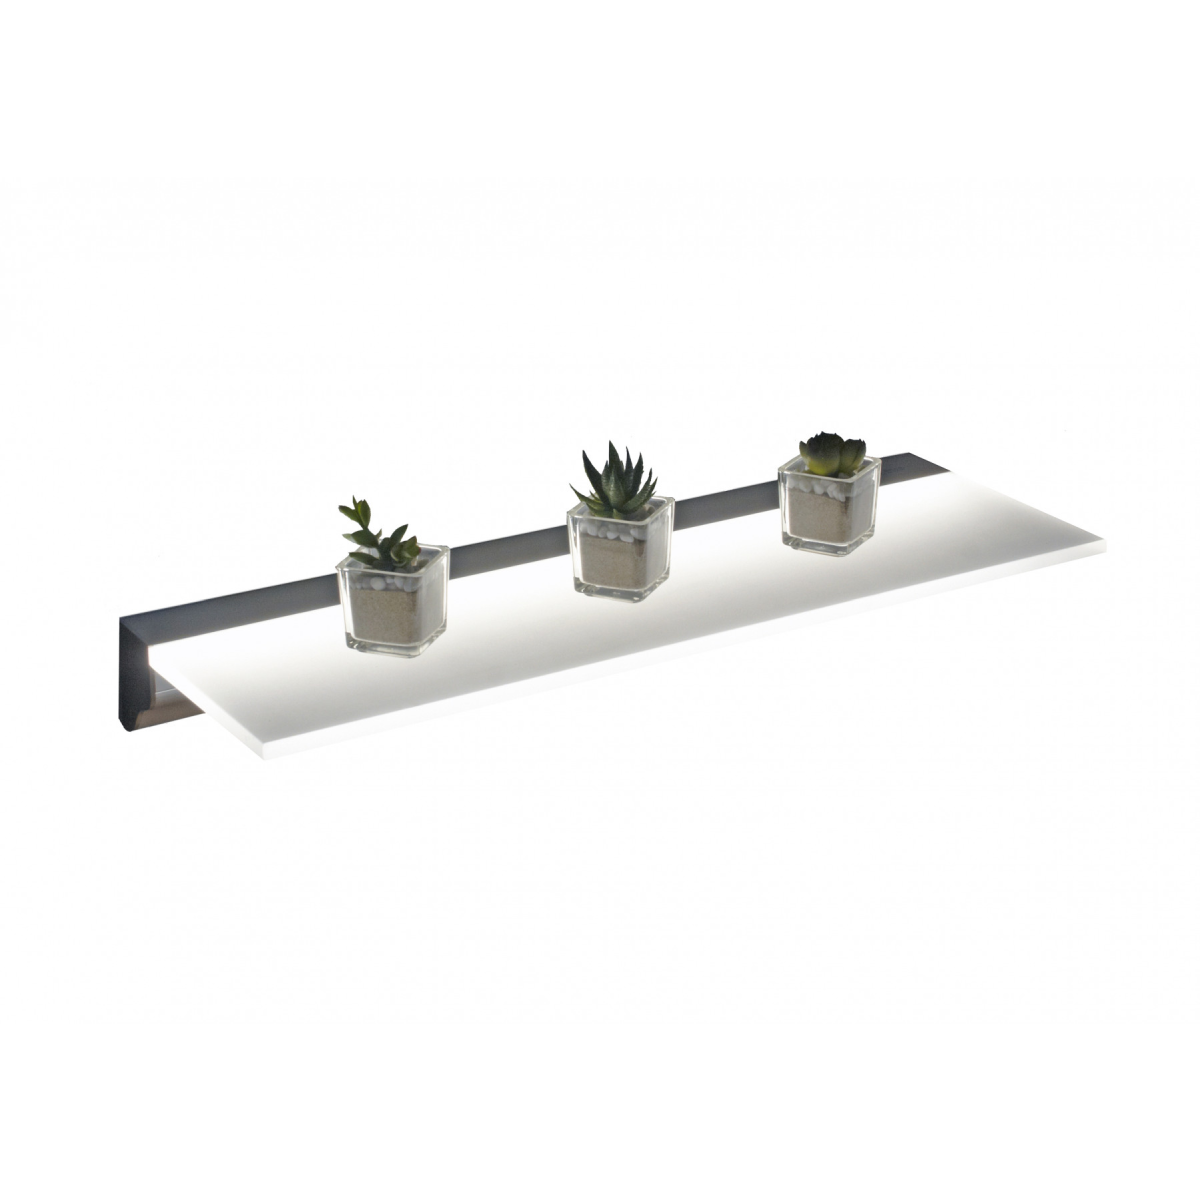 Frontline Illuminated LED Floating Shelf 900mm